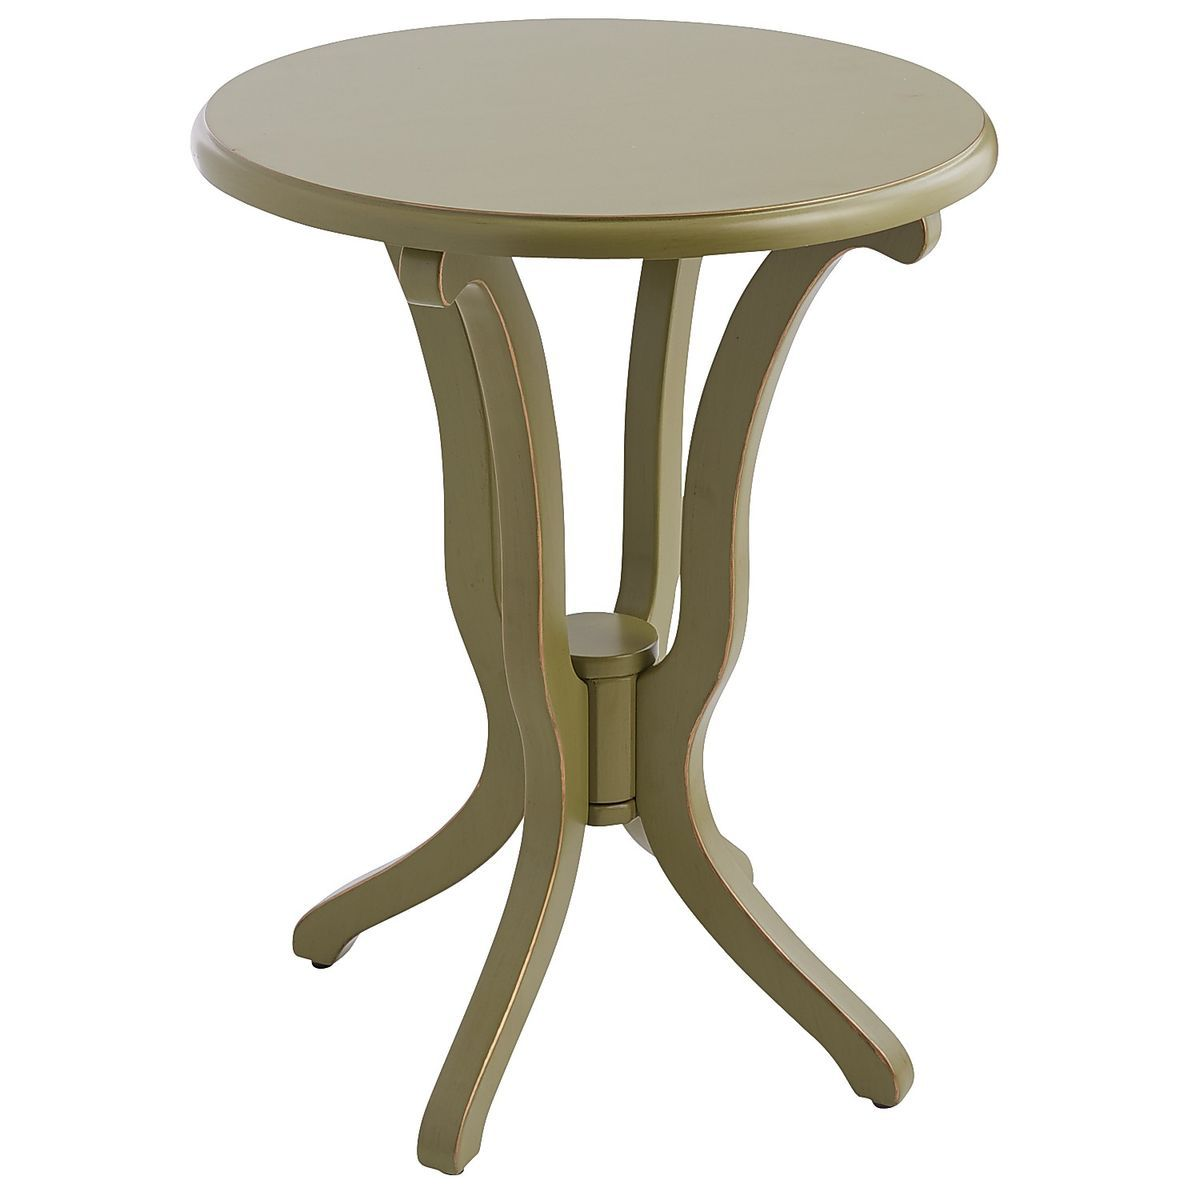 daffodil accent table moss green pier imports new townhouse tables home ornaments glass top side one floor lamps white half moon circular west elm coupon code modern kitchen